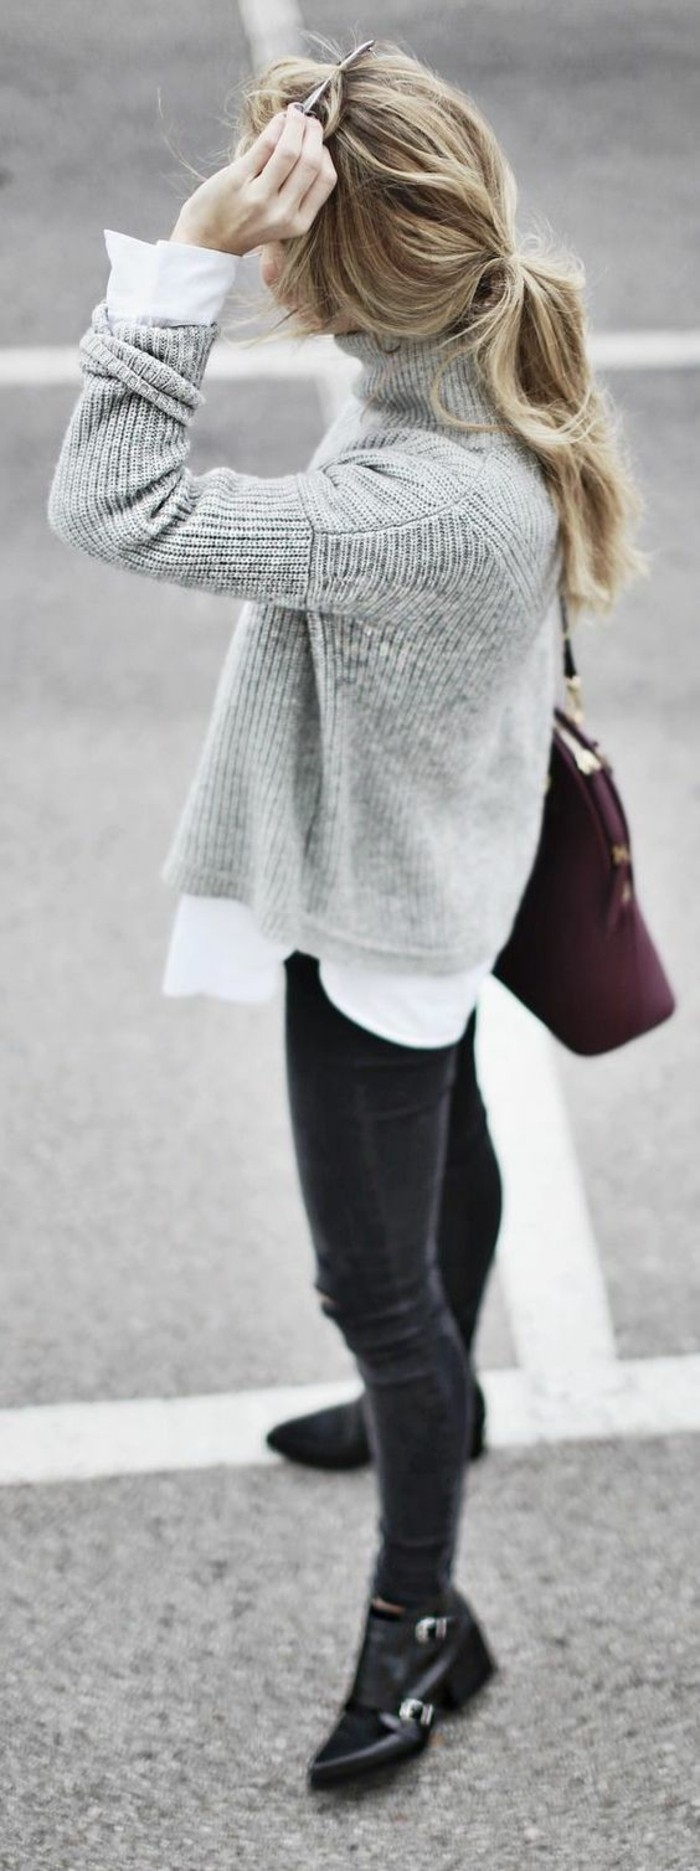 tendance-hiver-pull-chaud-femme-pull-gris-et-chemise-blanche